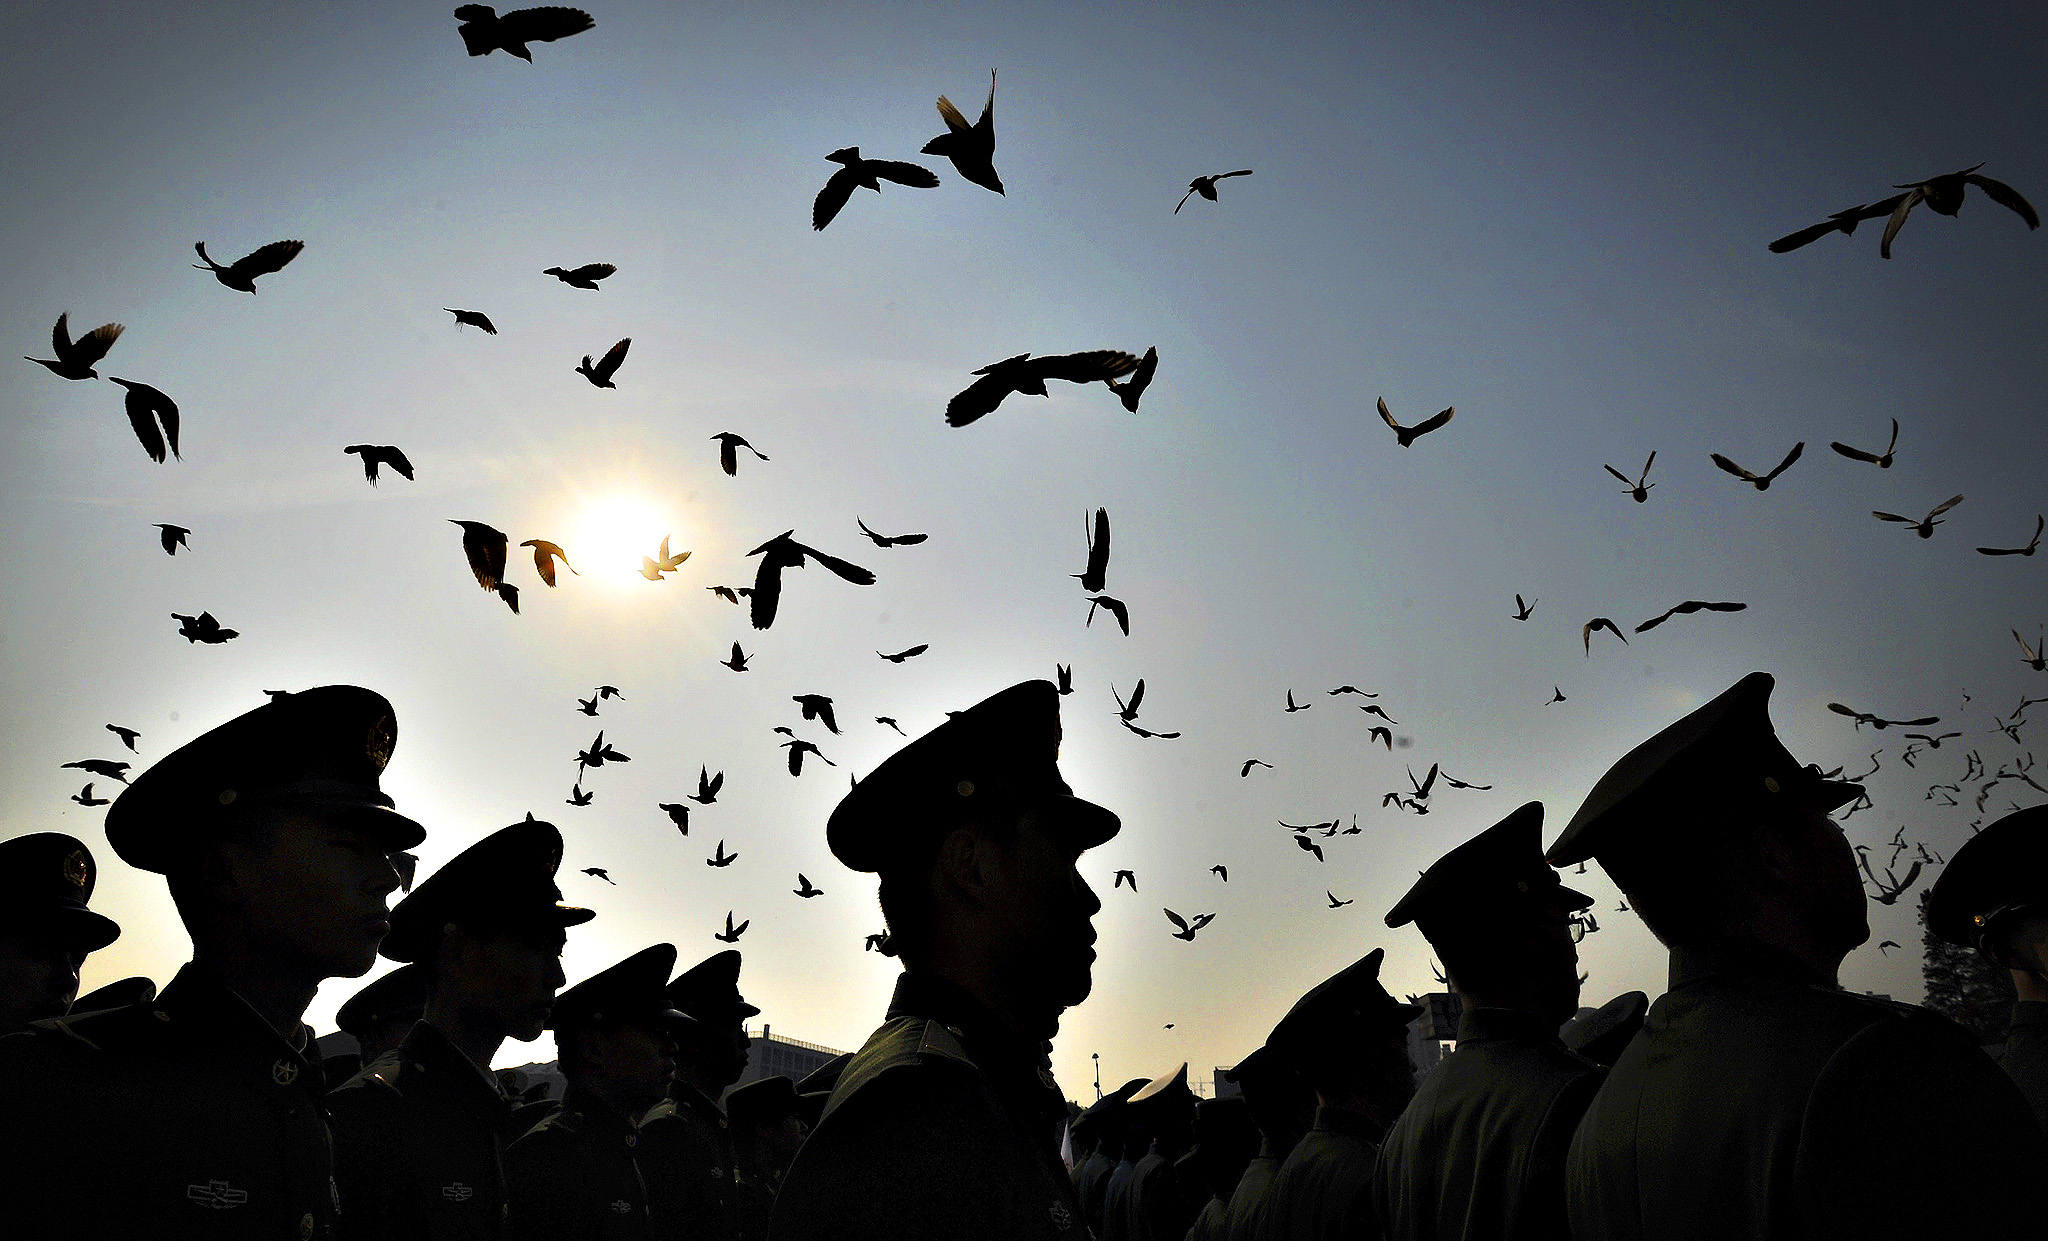 Doves fly above Chinese paramilitary policemen as they gather to mourn for the victims of 1937 Nanjing Massacre at the Nanjing Massacre Memorial Hall in Nanjing in east China's Jiangsu province Friday, Dec. 13, 2013. Nanjing on Friday marked 76 years after a bloody invasion by the Japanese imperial army that remains as one of the most sensitive friction points in the shared history of two Asian powers.